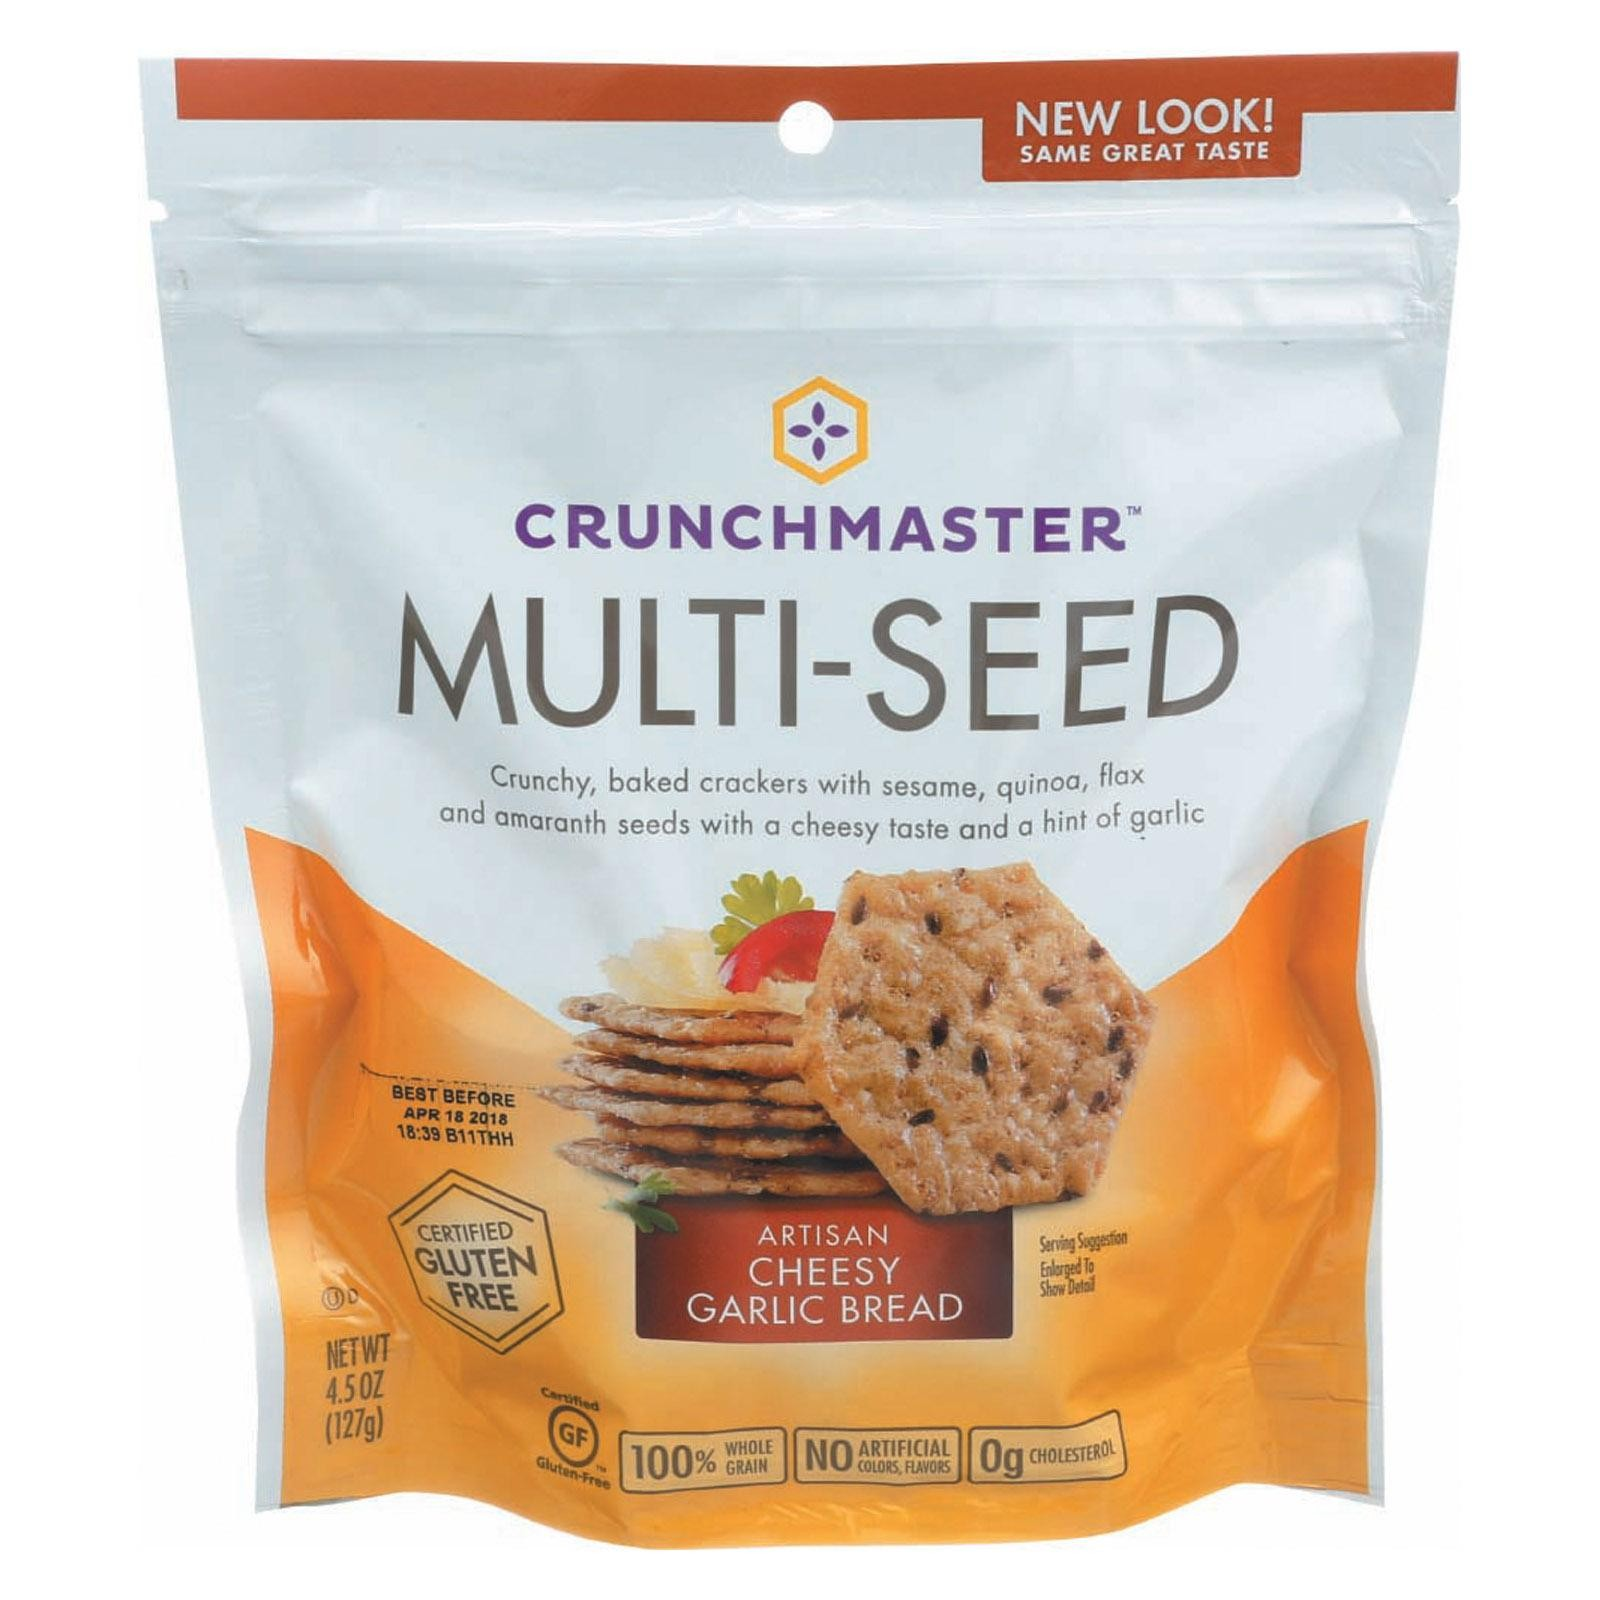 Crunchmaster Multi-seed Cracker - Artisan Cheesy Garlic Bread - pack of 12 - 4.5 Oz